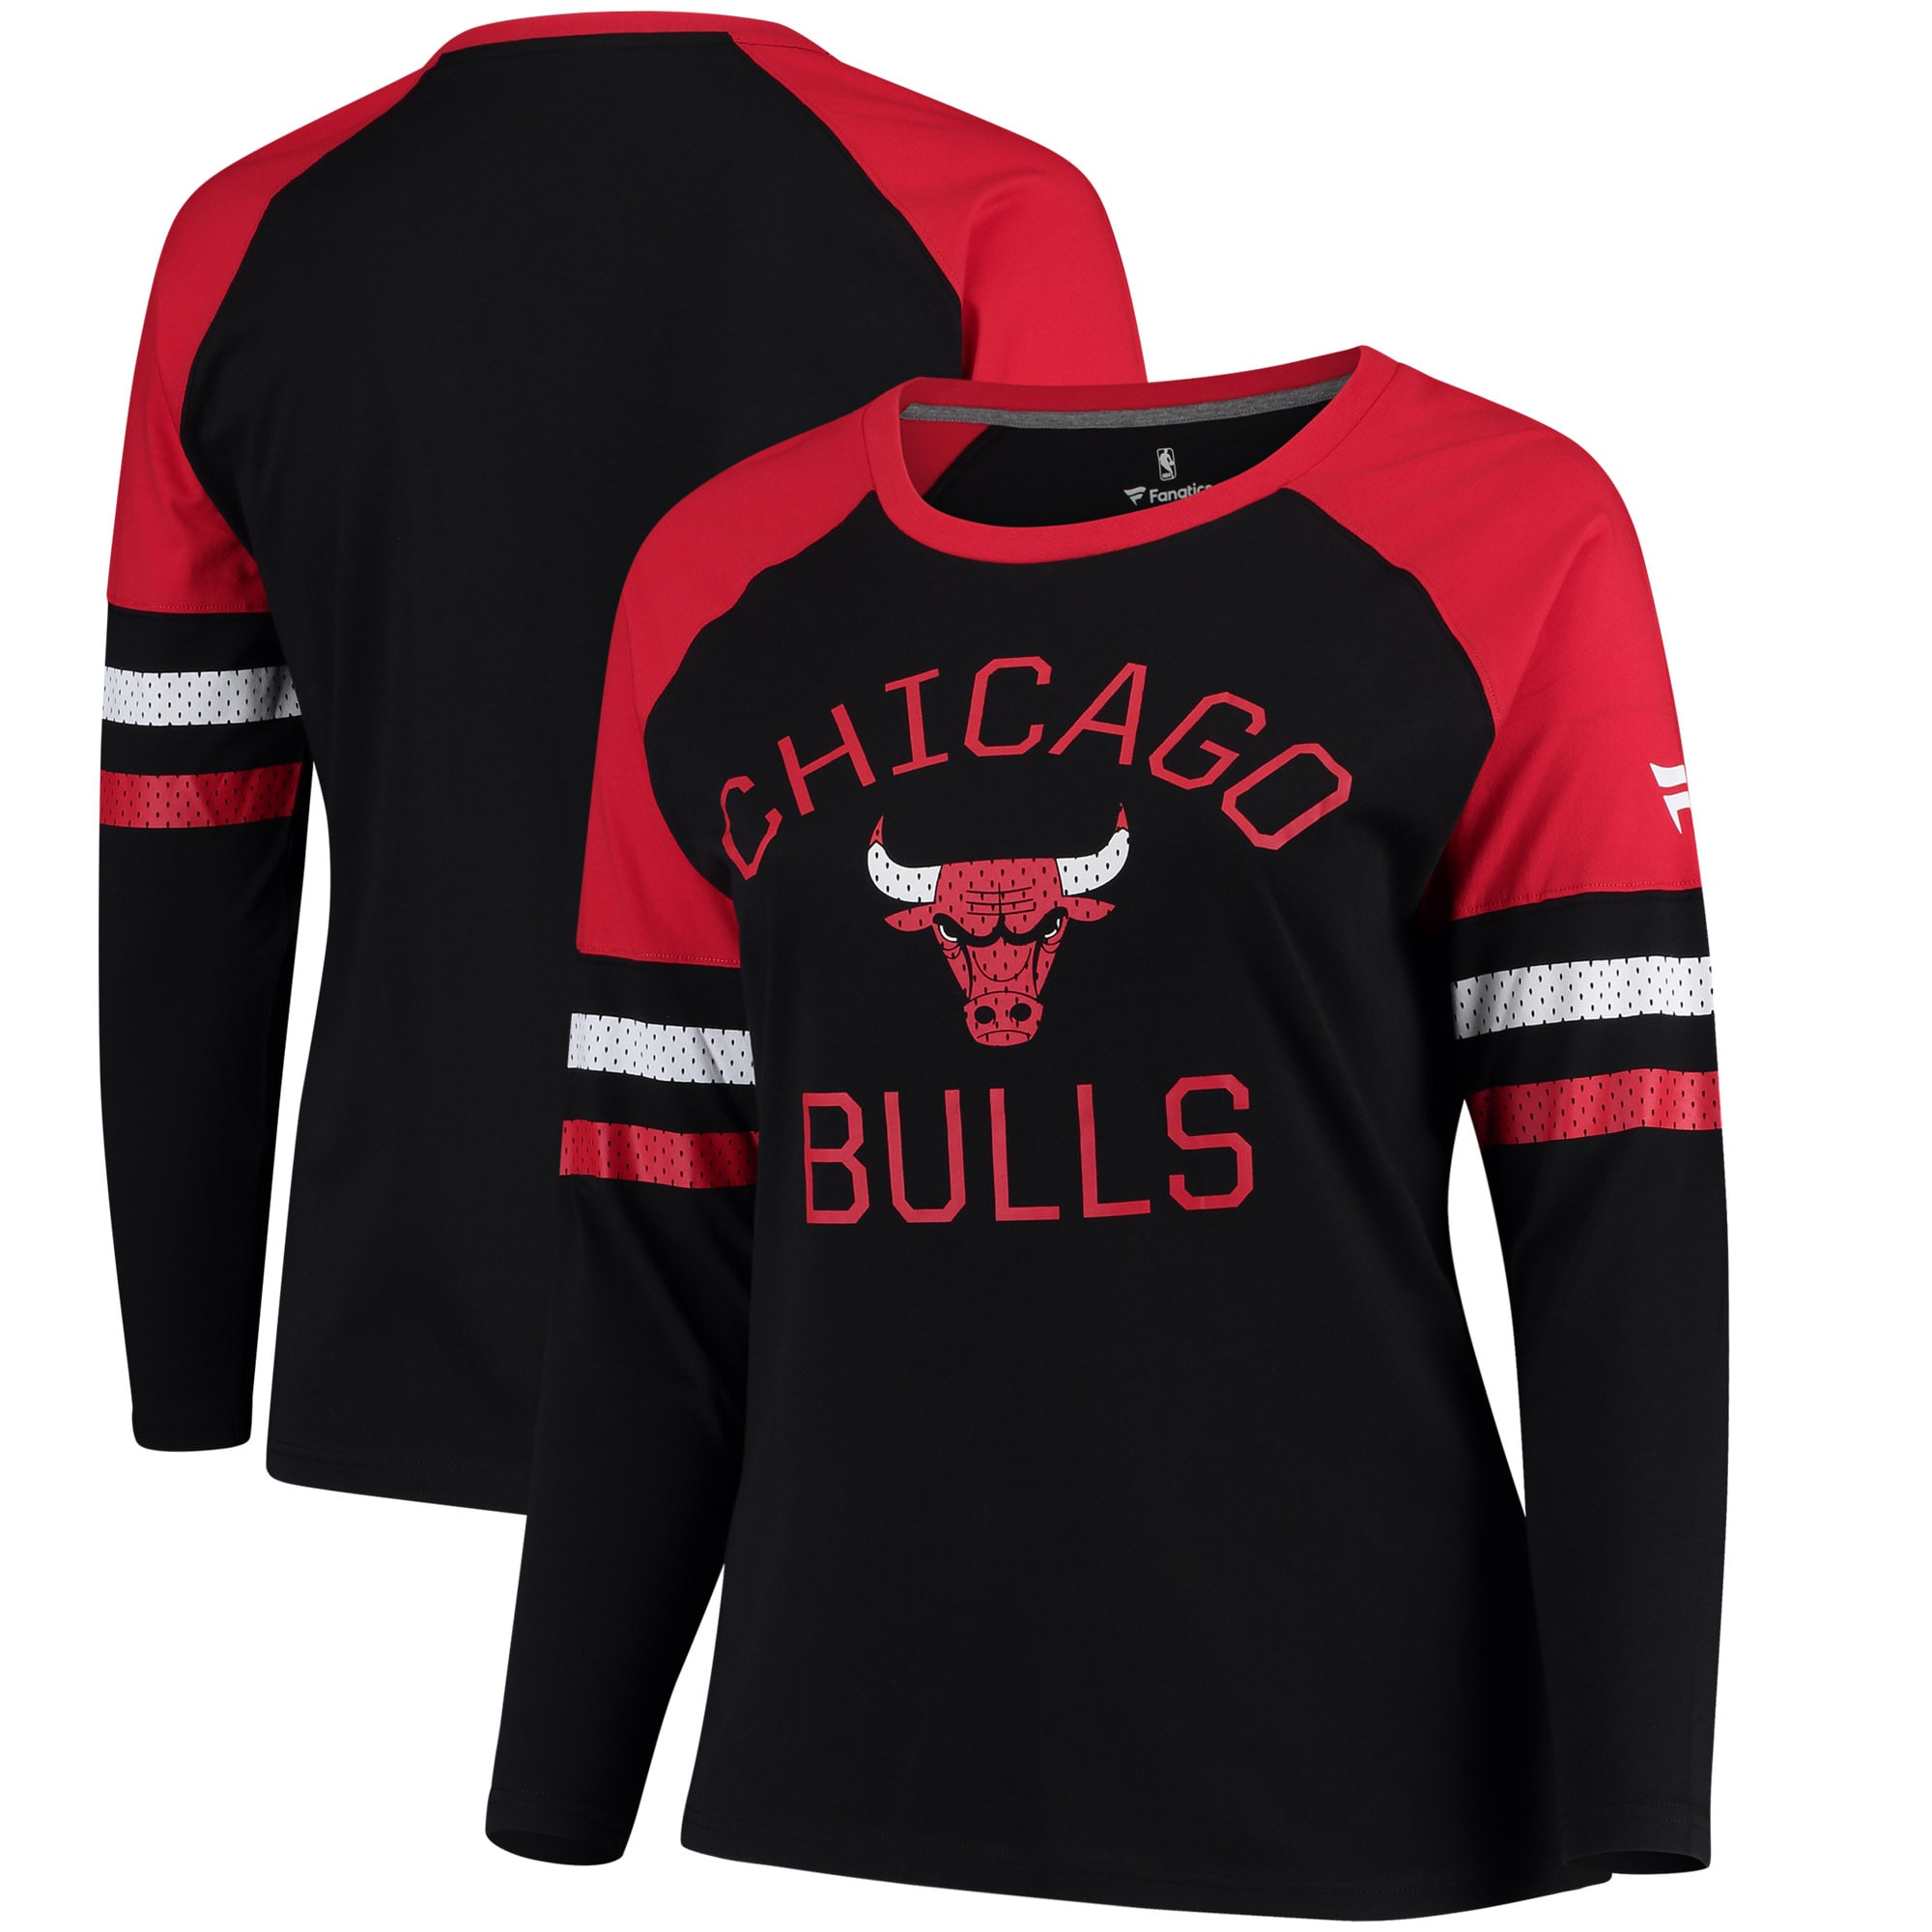 Chicago Bulls Fanatics Branded Women's Plus Sizes Iconic Long Sleeve T-Shirt - Black